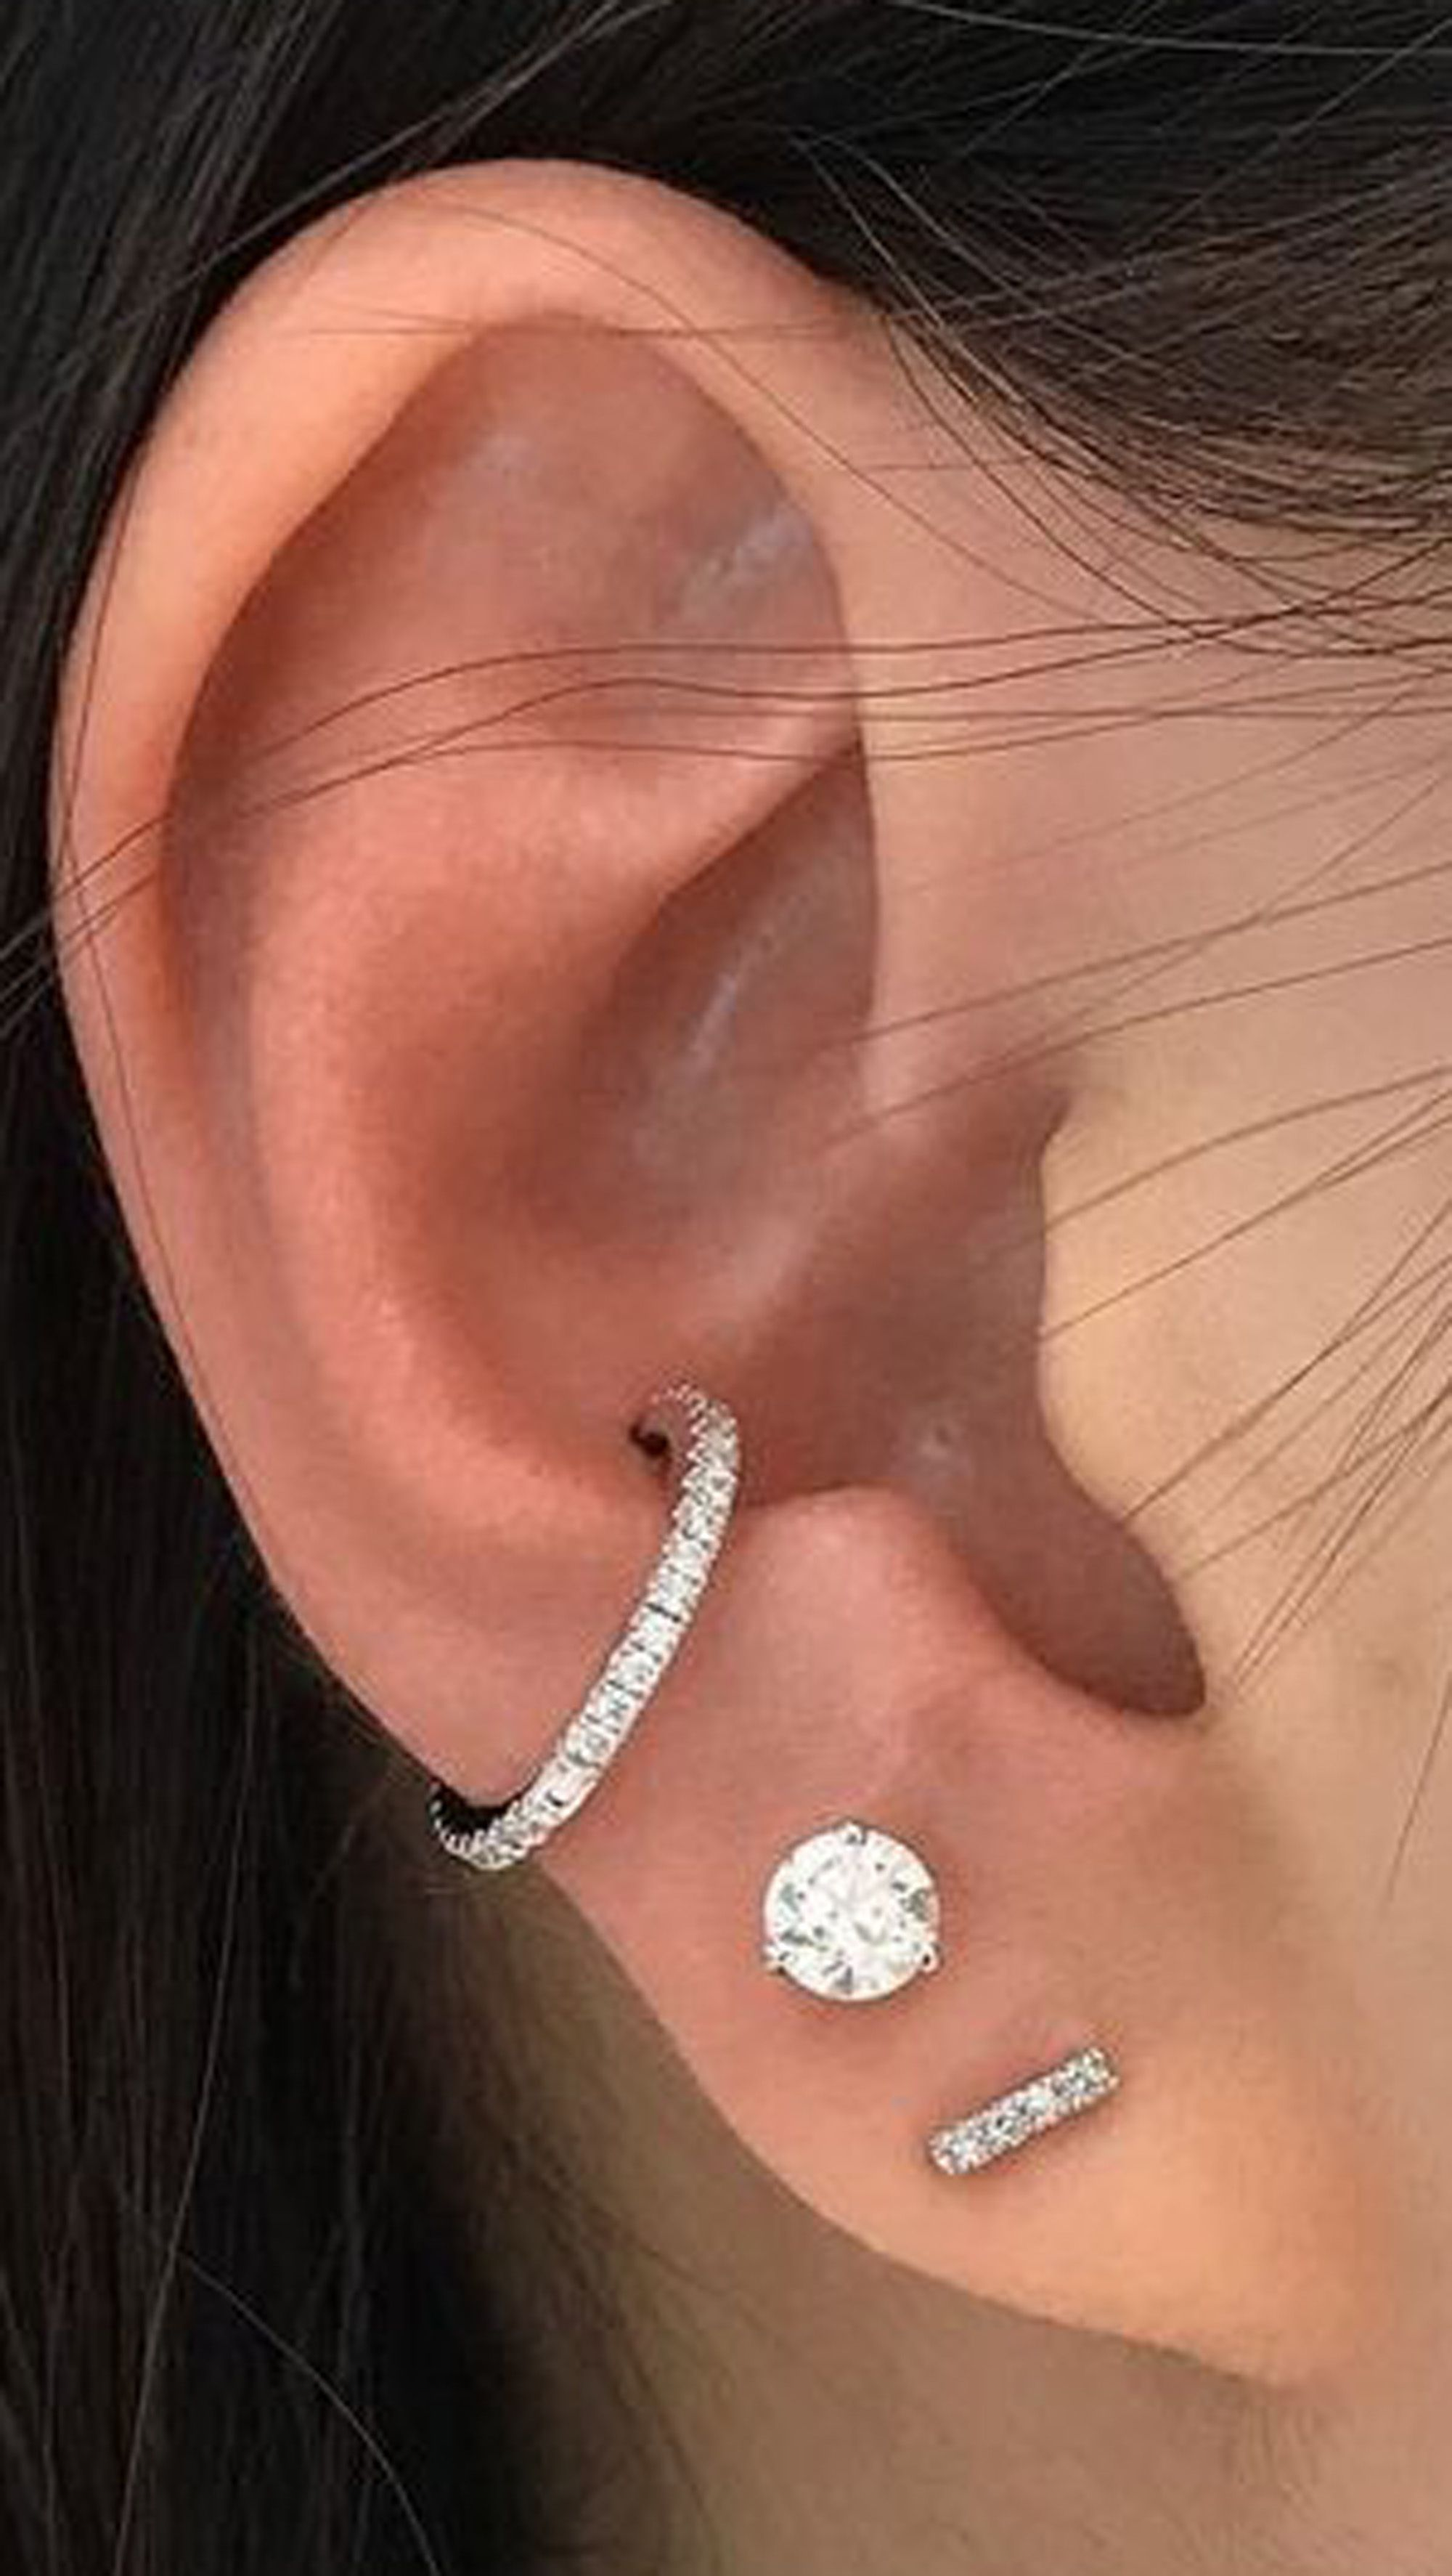 Cute Multiple Ear Piercing Ideas For Women Conch